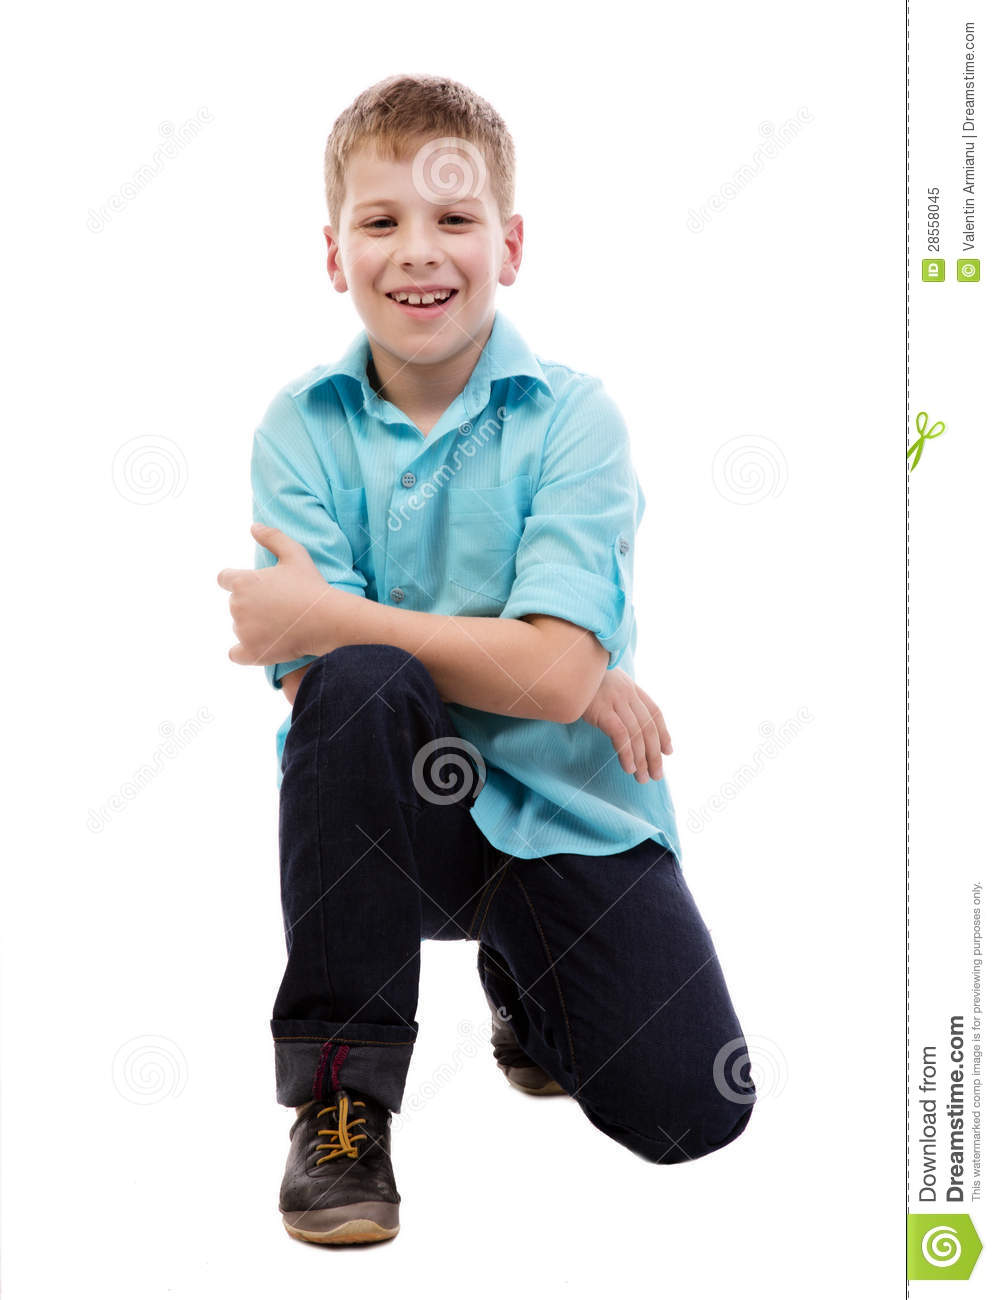 Cool boy royalty free stock photo image 28558045 - Cool boys photo ...